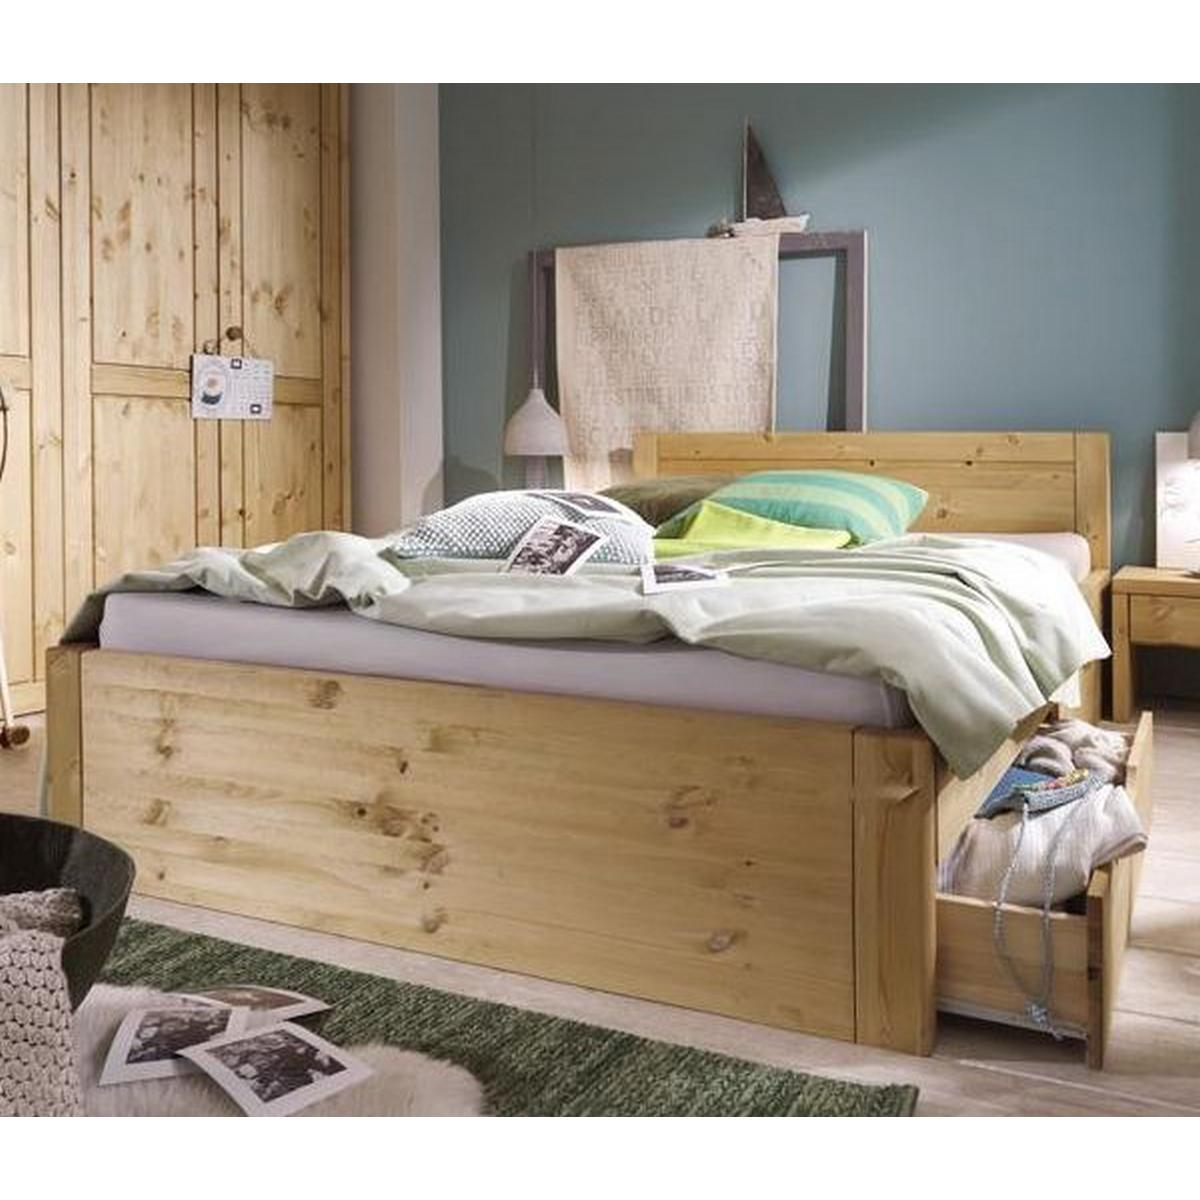 doppelbett 140x200 rauna xl kiefer massiv gebeizt ge lt. Black Bedroom Furniture Sets. Home Design Ideas